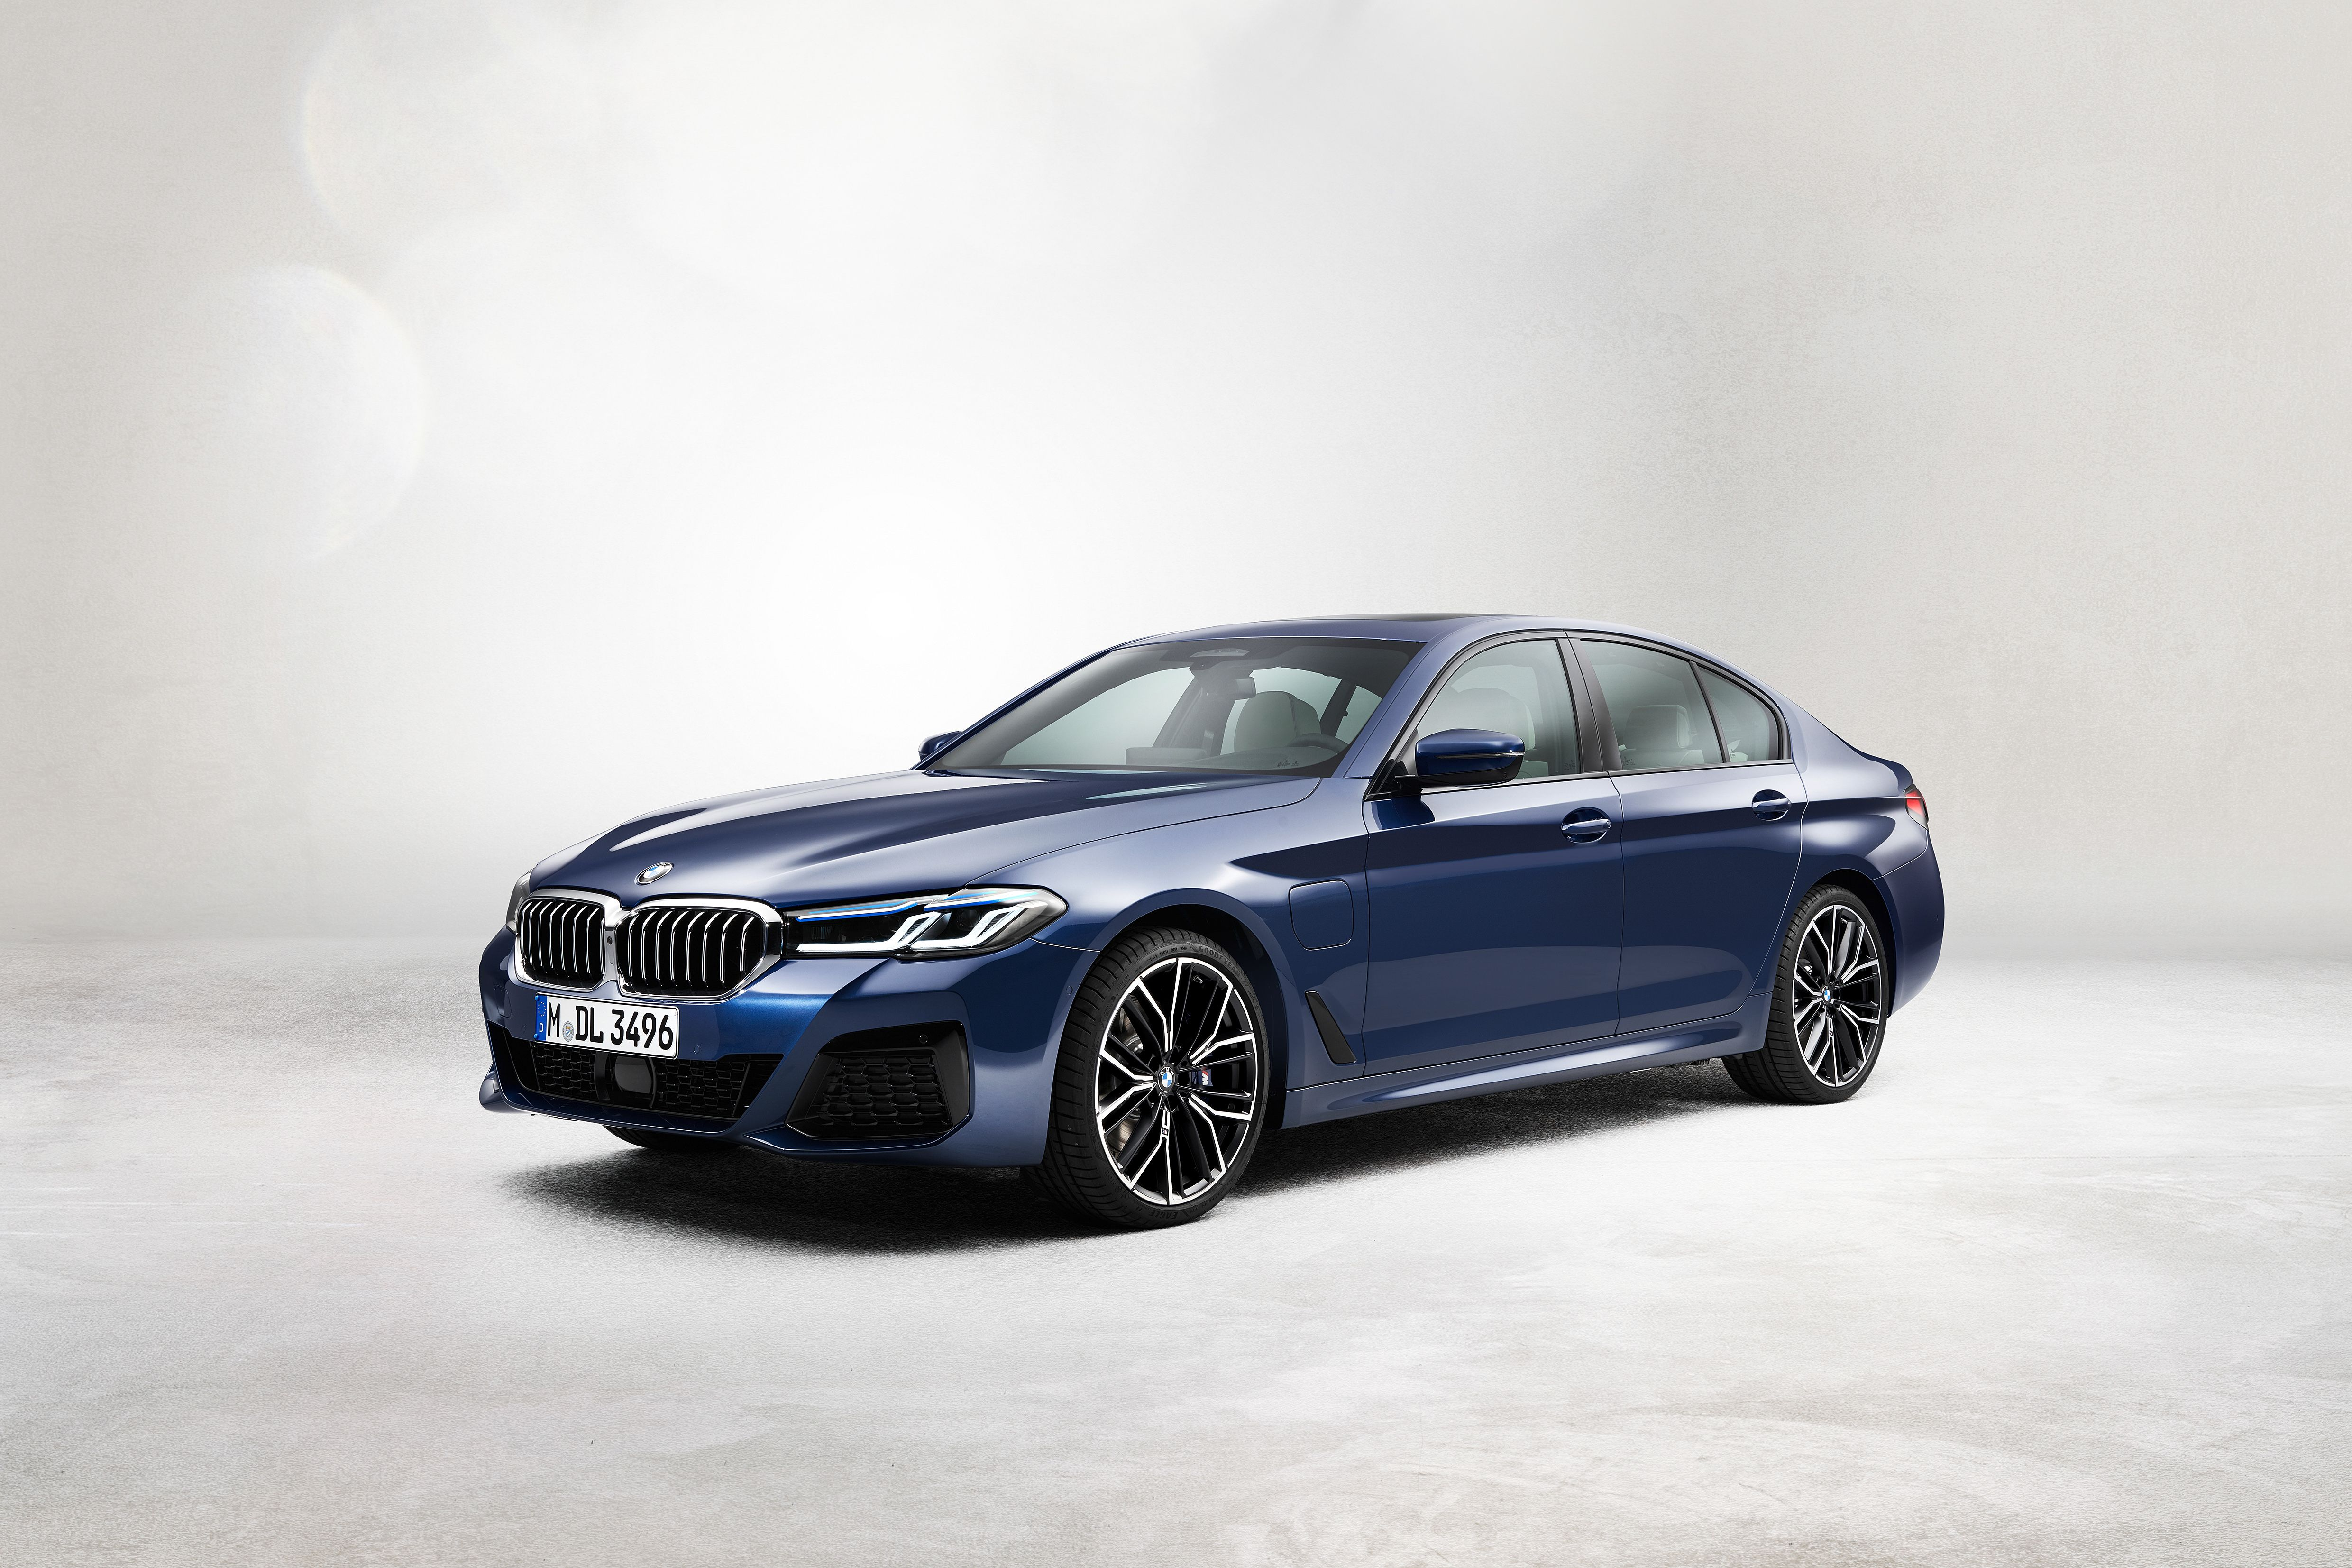 2021 Bmw 5 Series Gets New Tech And An Altered Look